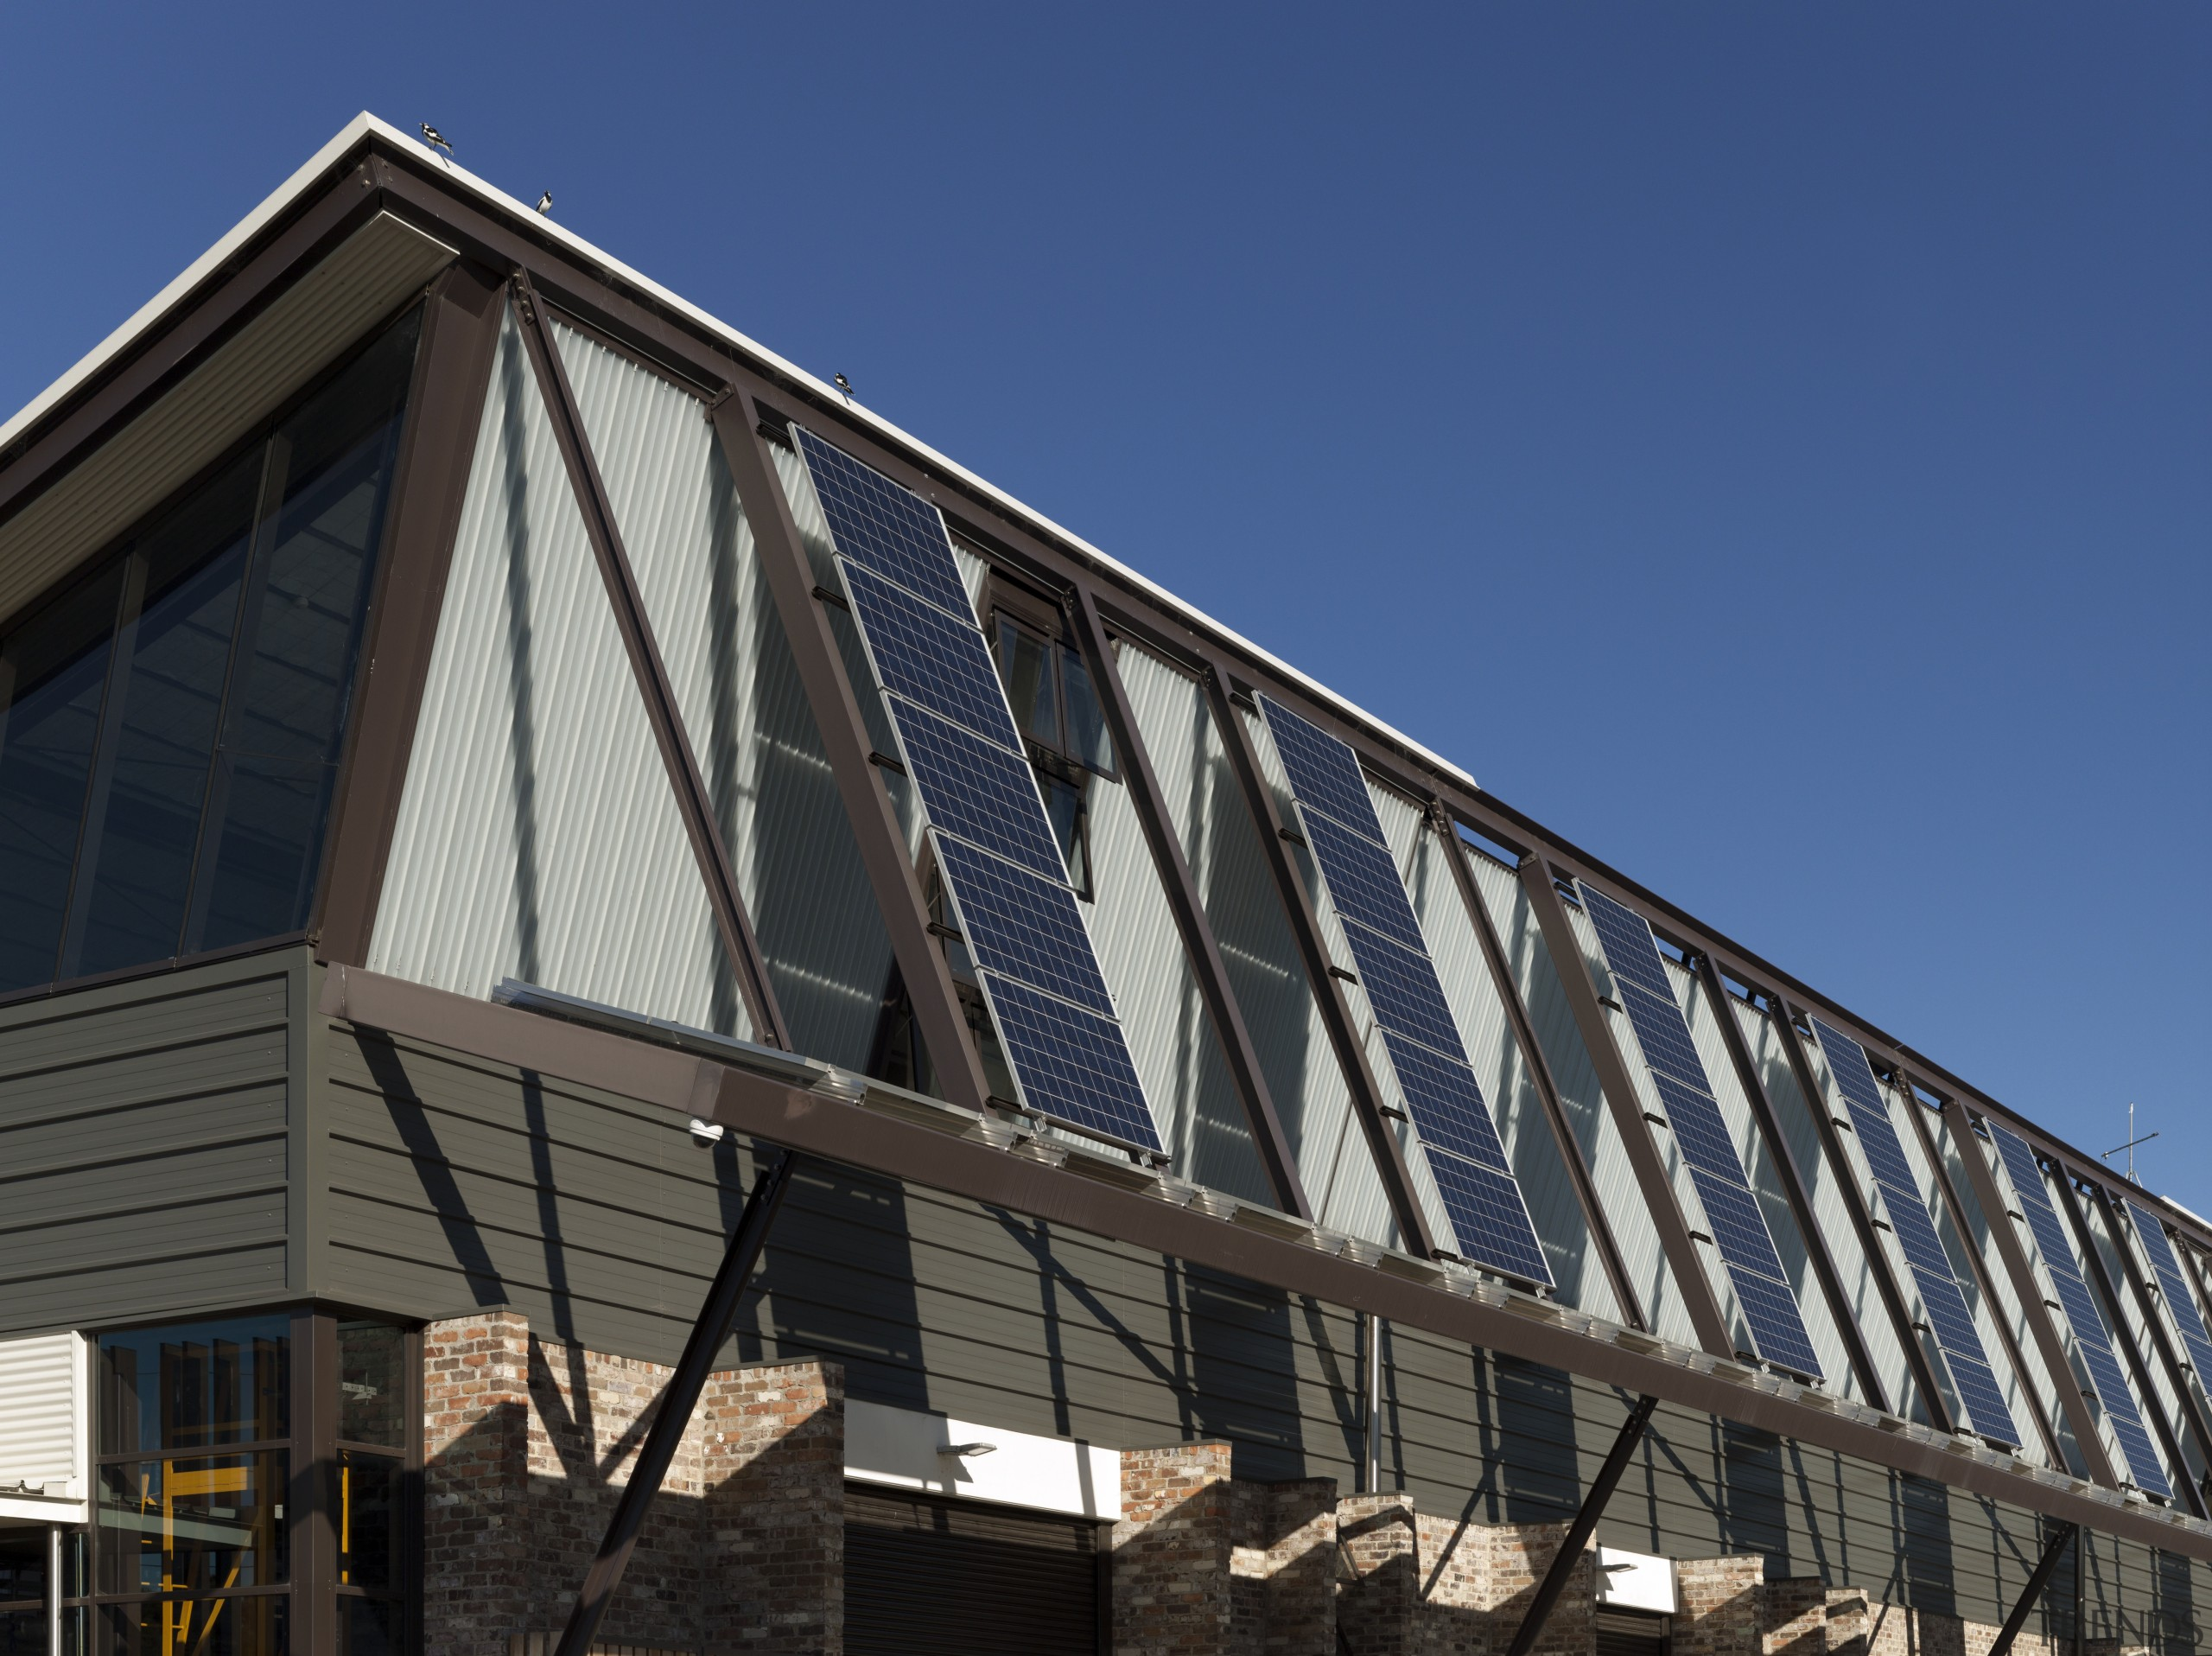 The north-facing photovoltaic array on the high-bay laboratory architecture, building, commercial building, corporate headquarters, daylighting, daytime, facade, home, house, roof, siding, sky, structure, window, blue, black